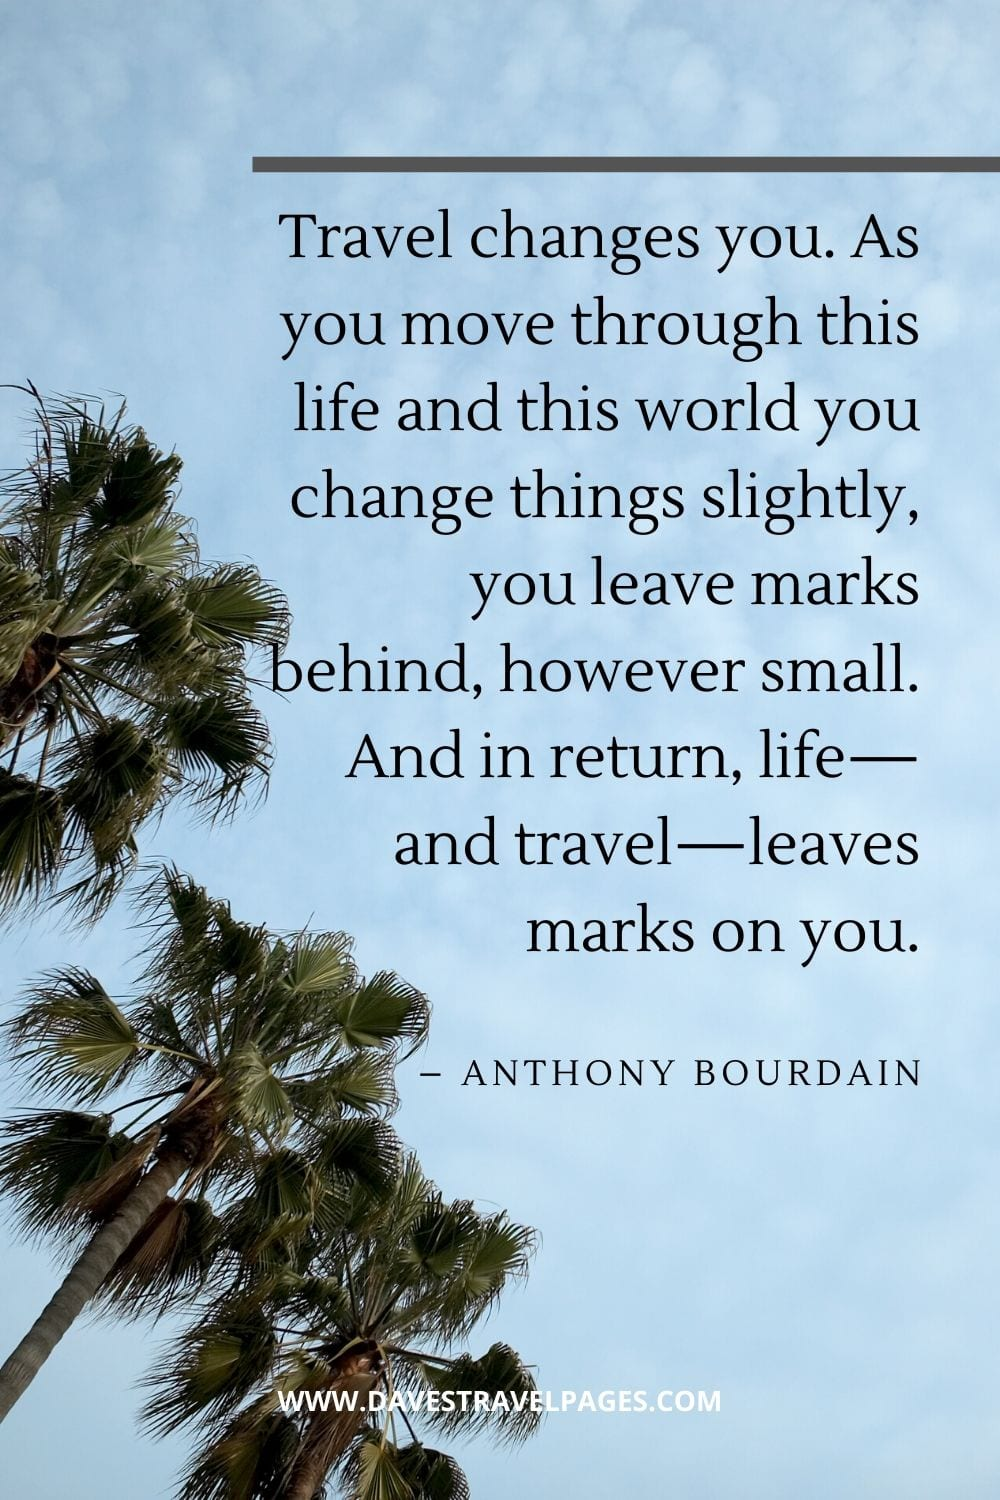 """Quote about travel: """"Travel changes you. As you move through this life and this world you change things slightly, you leave marks behind, however small. And in return, life—and travel—leaves marks on you."""" – Anthony Bourdain"""